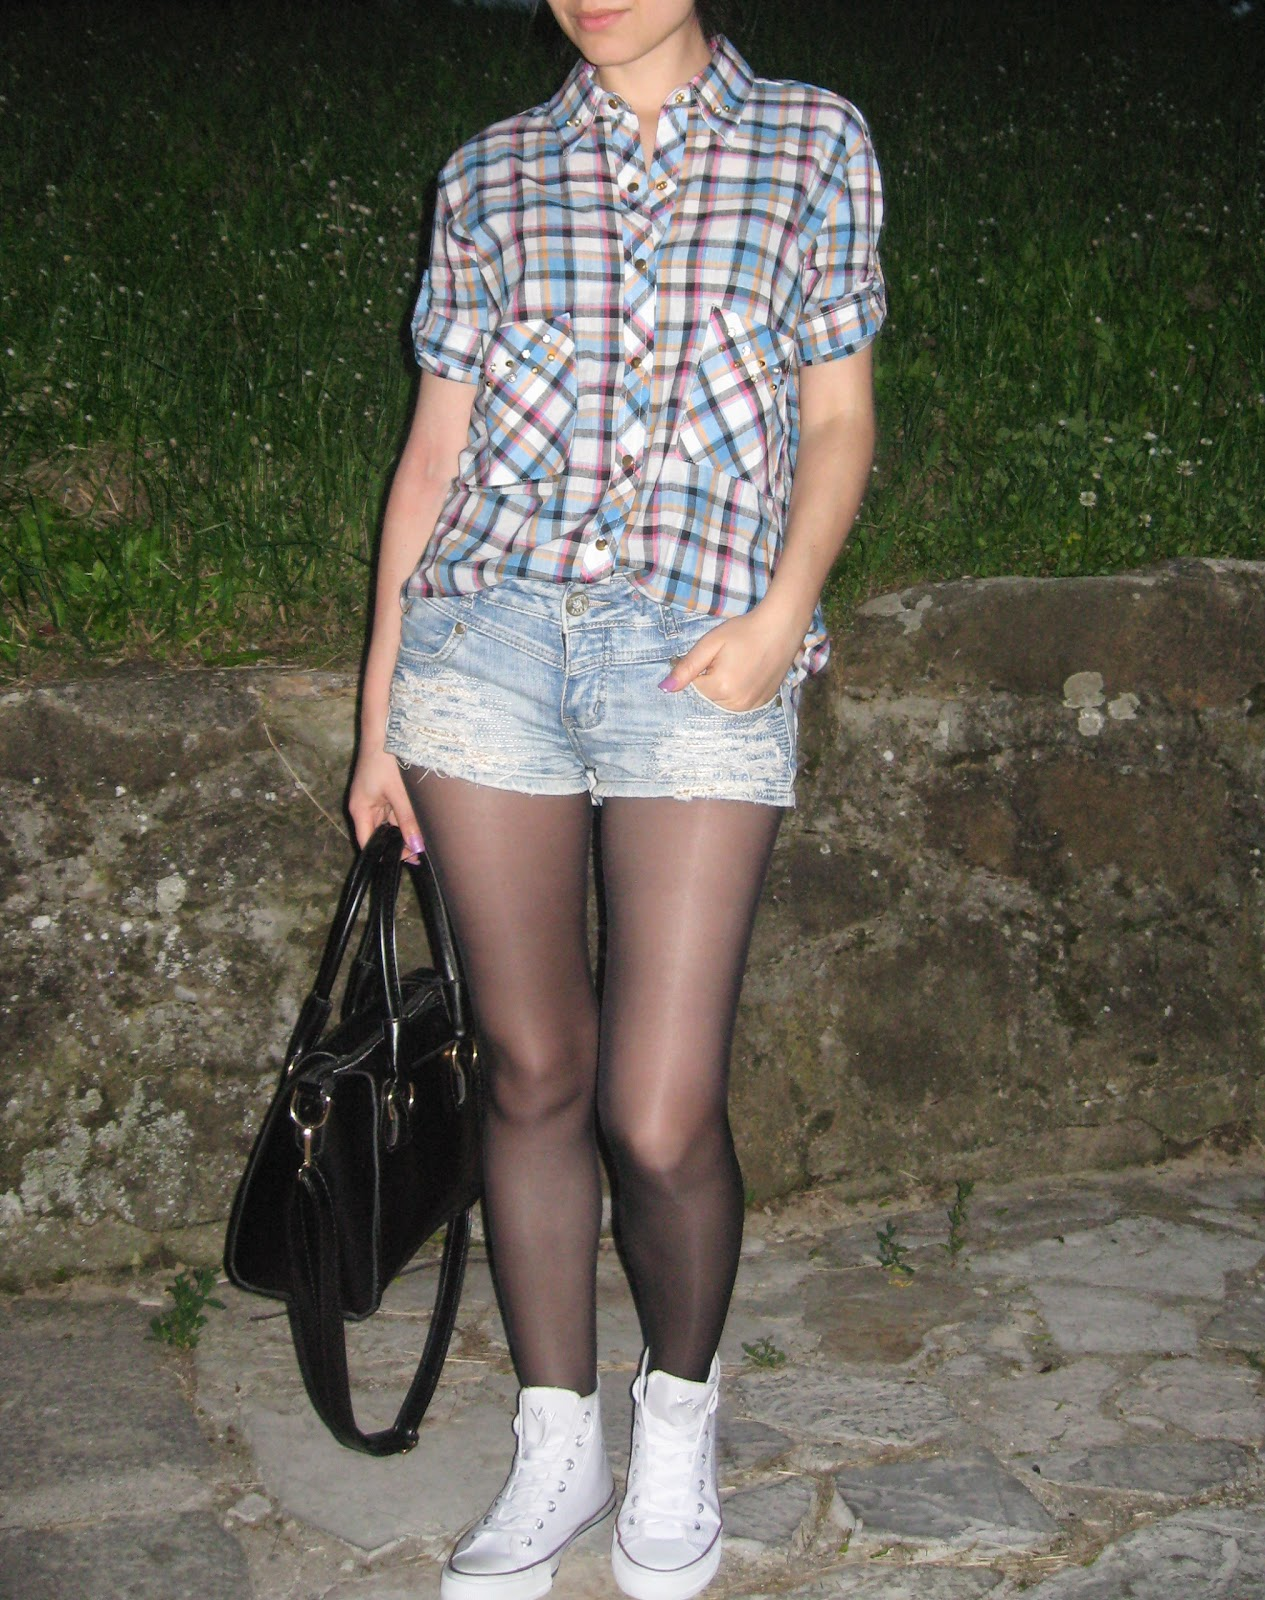 OOTD, deichmann white sneakers, white converse, styling white converse sneakers, sammydress black tote bag, blue plaid shirt, denim shorts, messy bun, casual outfit